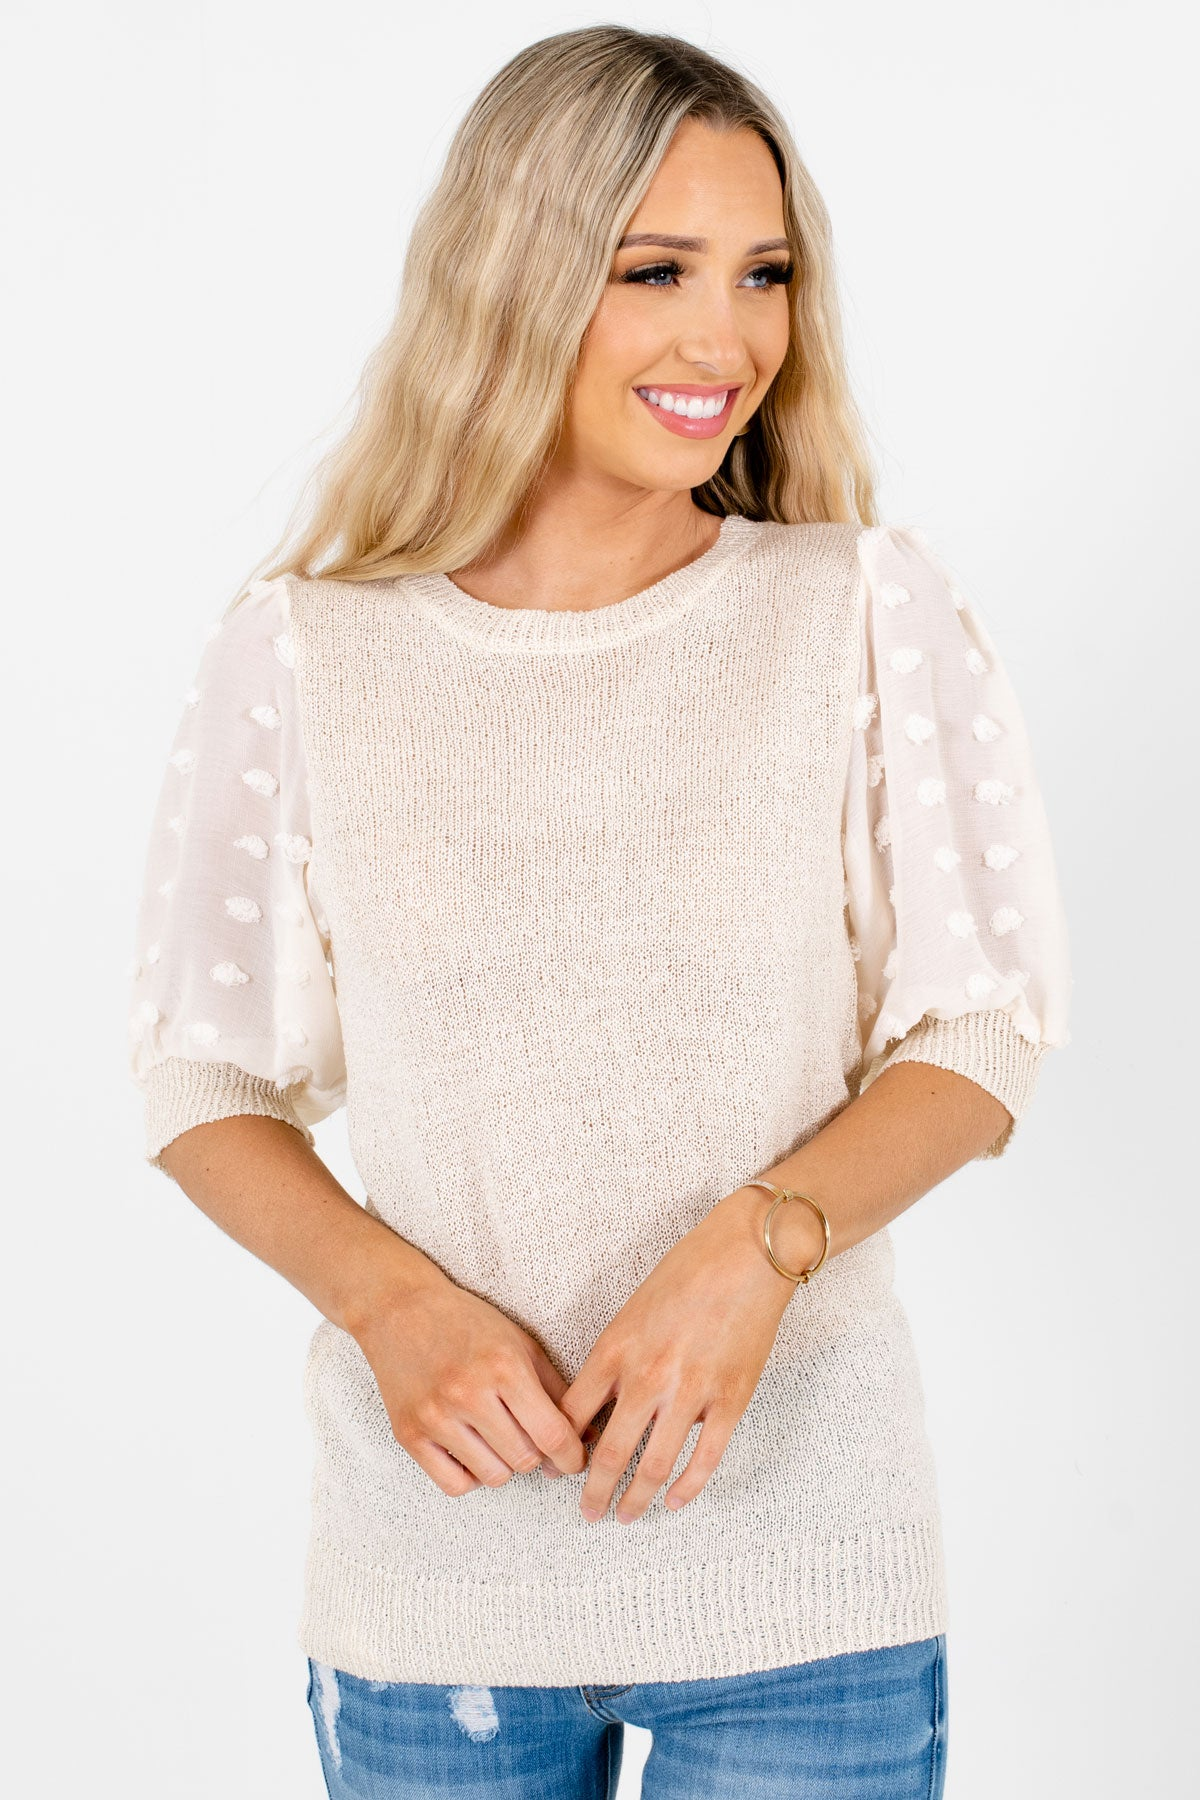 Cream Polka Dot Textured Sleeve Boutique Tops for Women